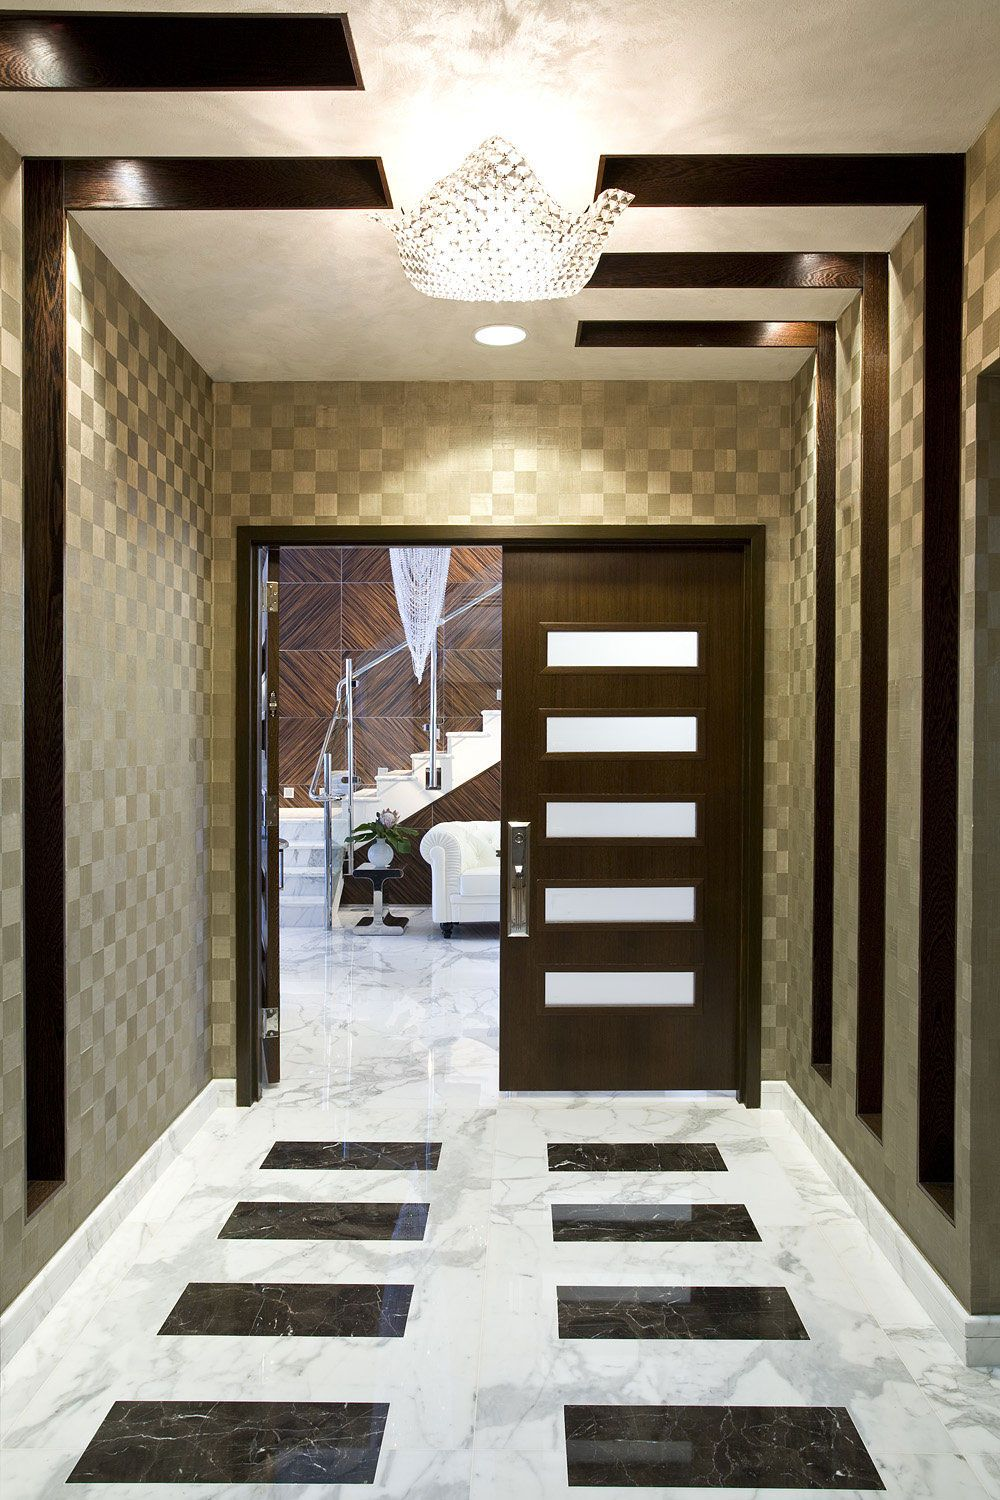 ^ 1000+ images about Ideas for the House on Pinterest Design, he ...